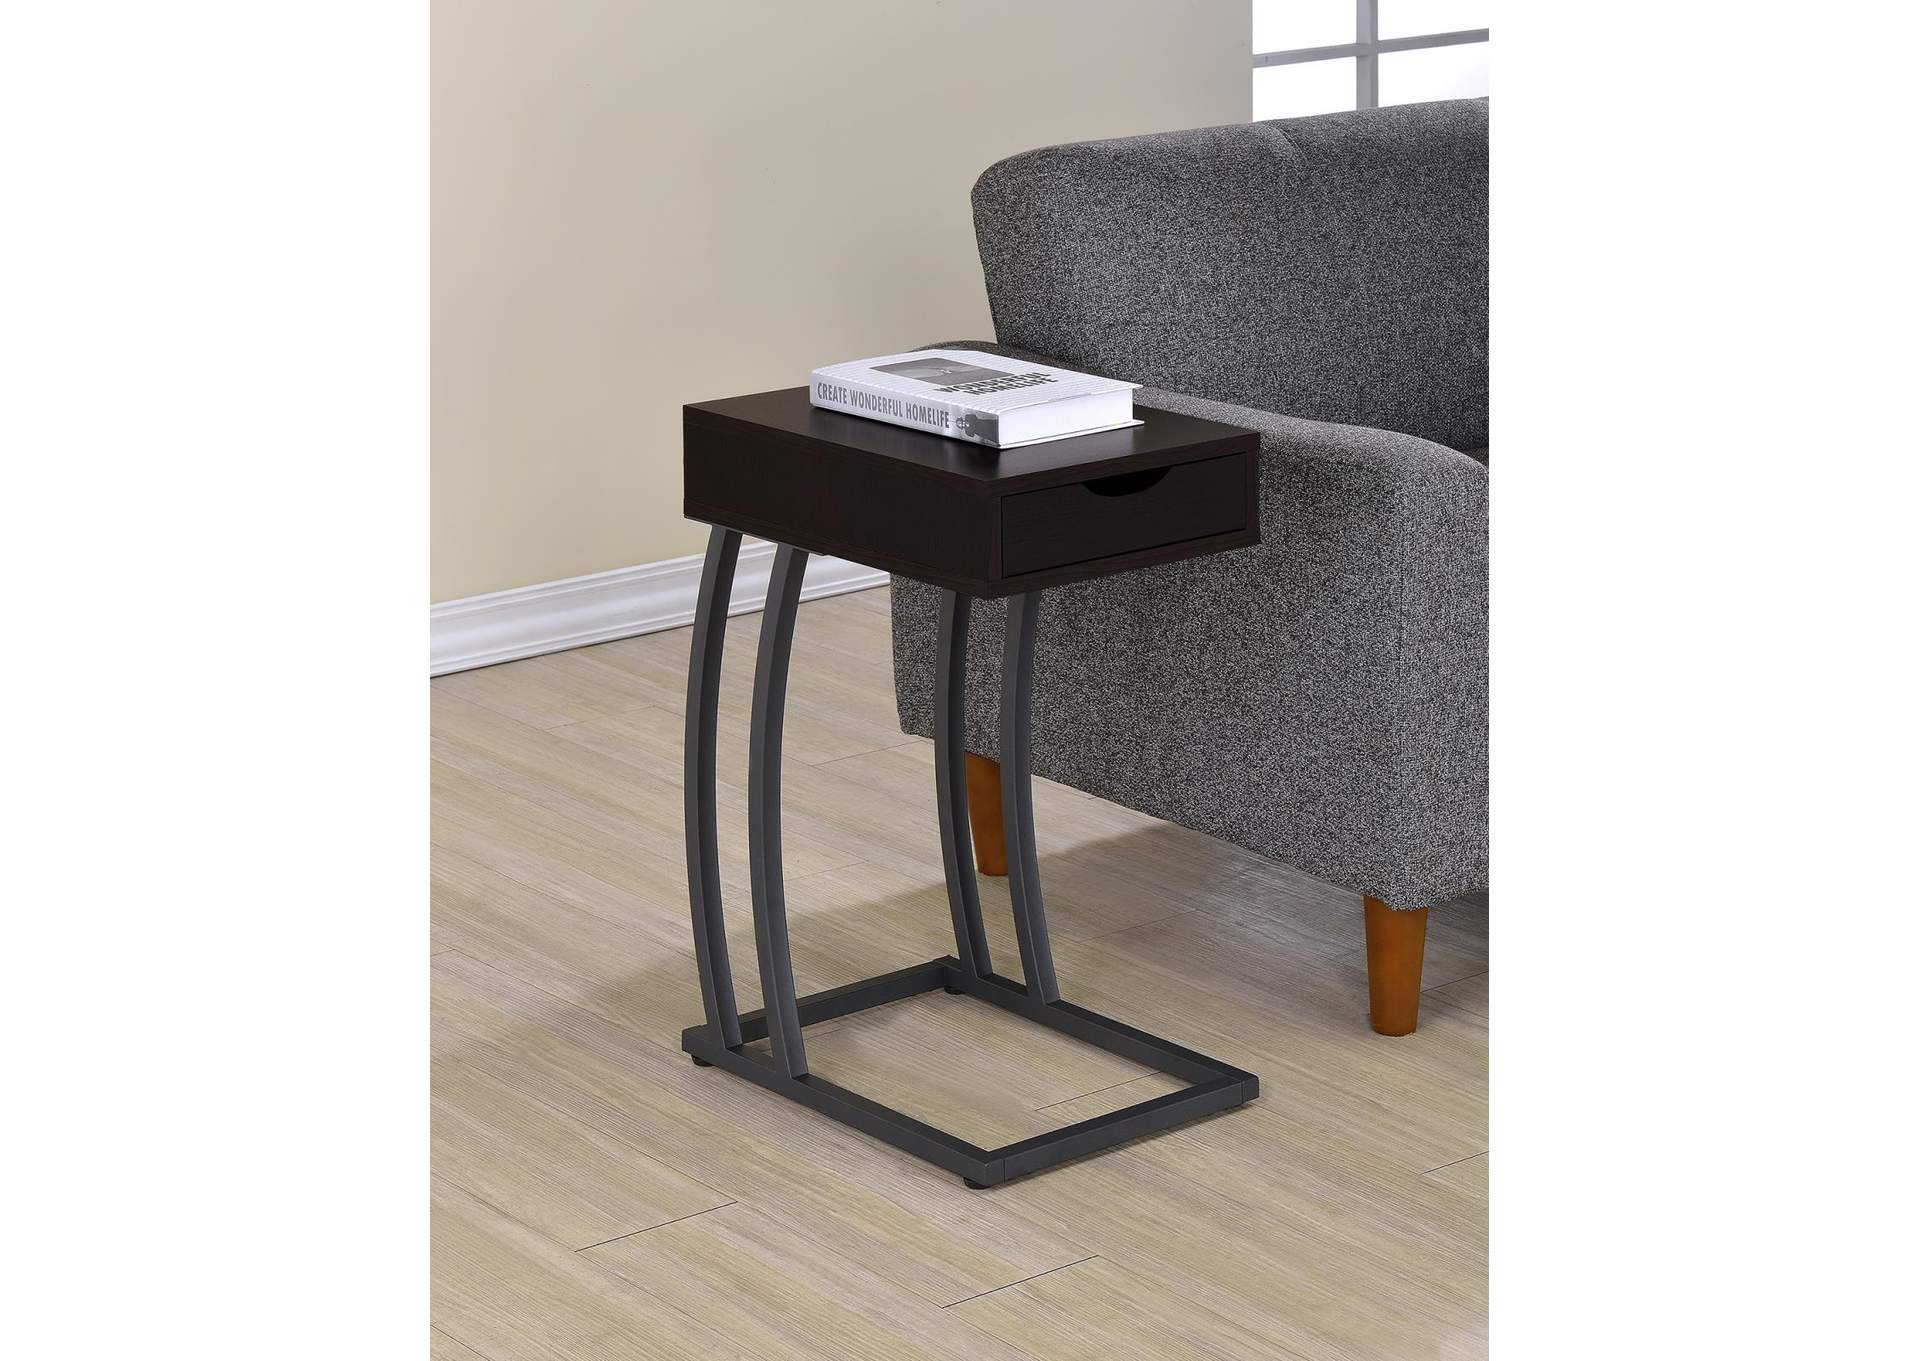 Cappuccino Industrial Cappuccino Accent Table,Coaster Furniture